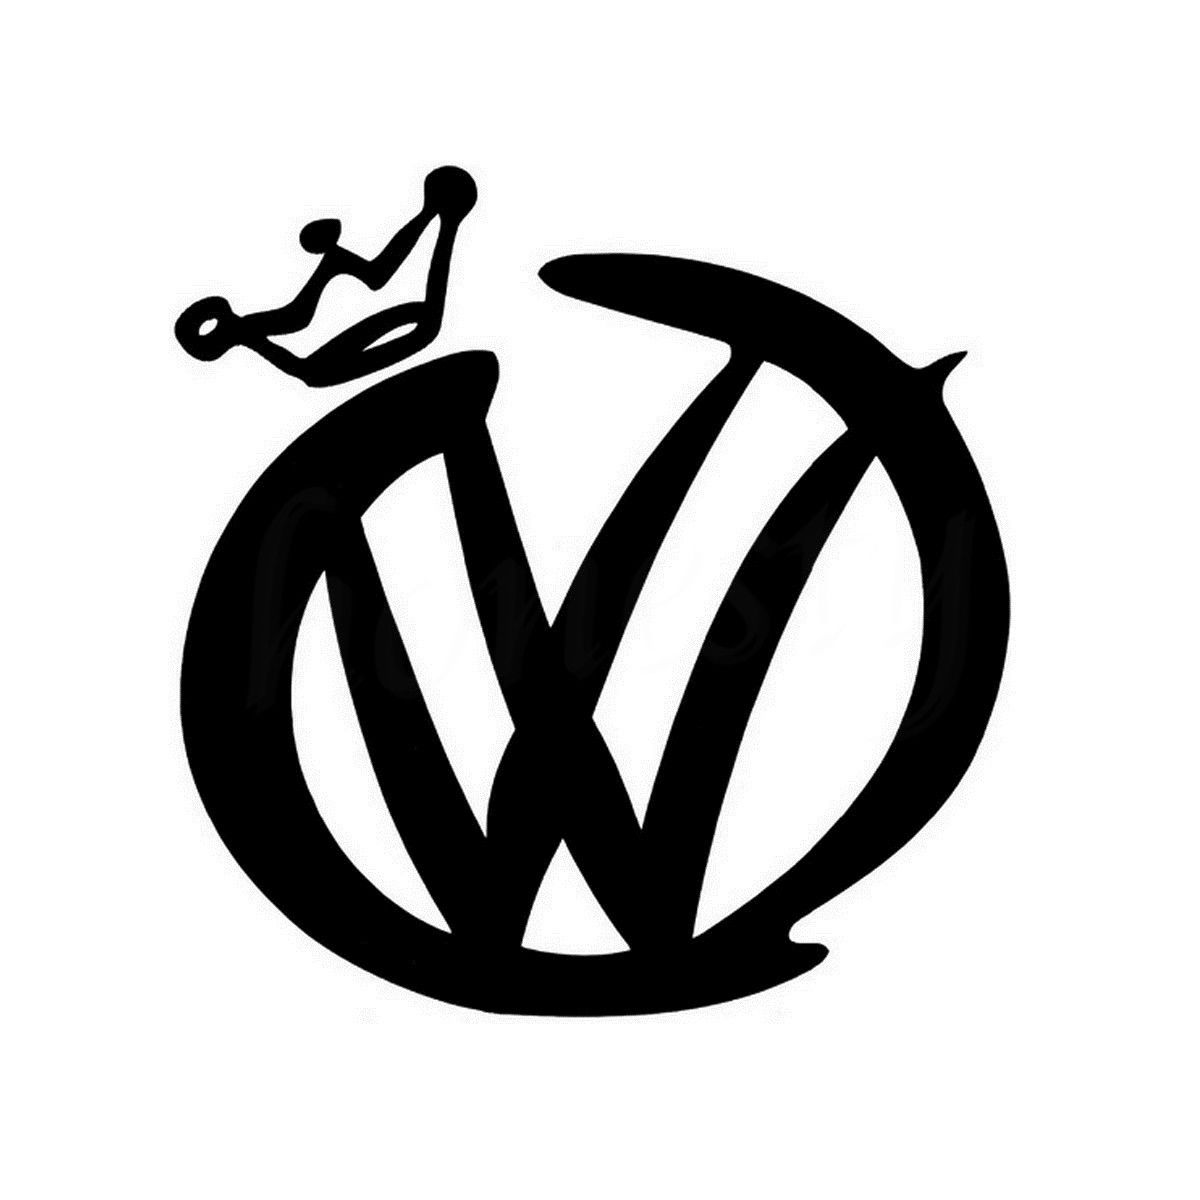 Fashion Vw Crown Car Motorcycle Decals Vinyl Waterproof Outdoor